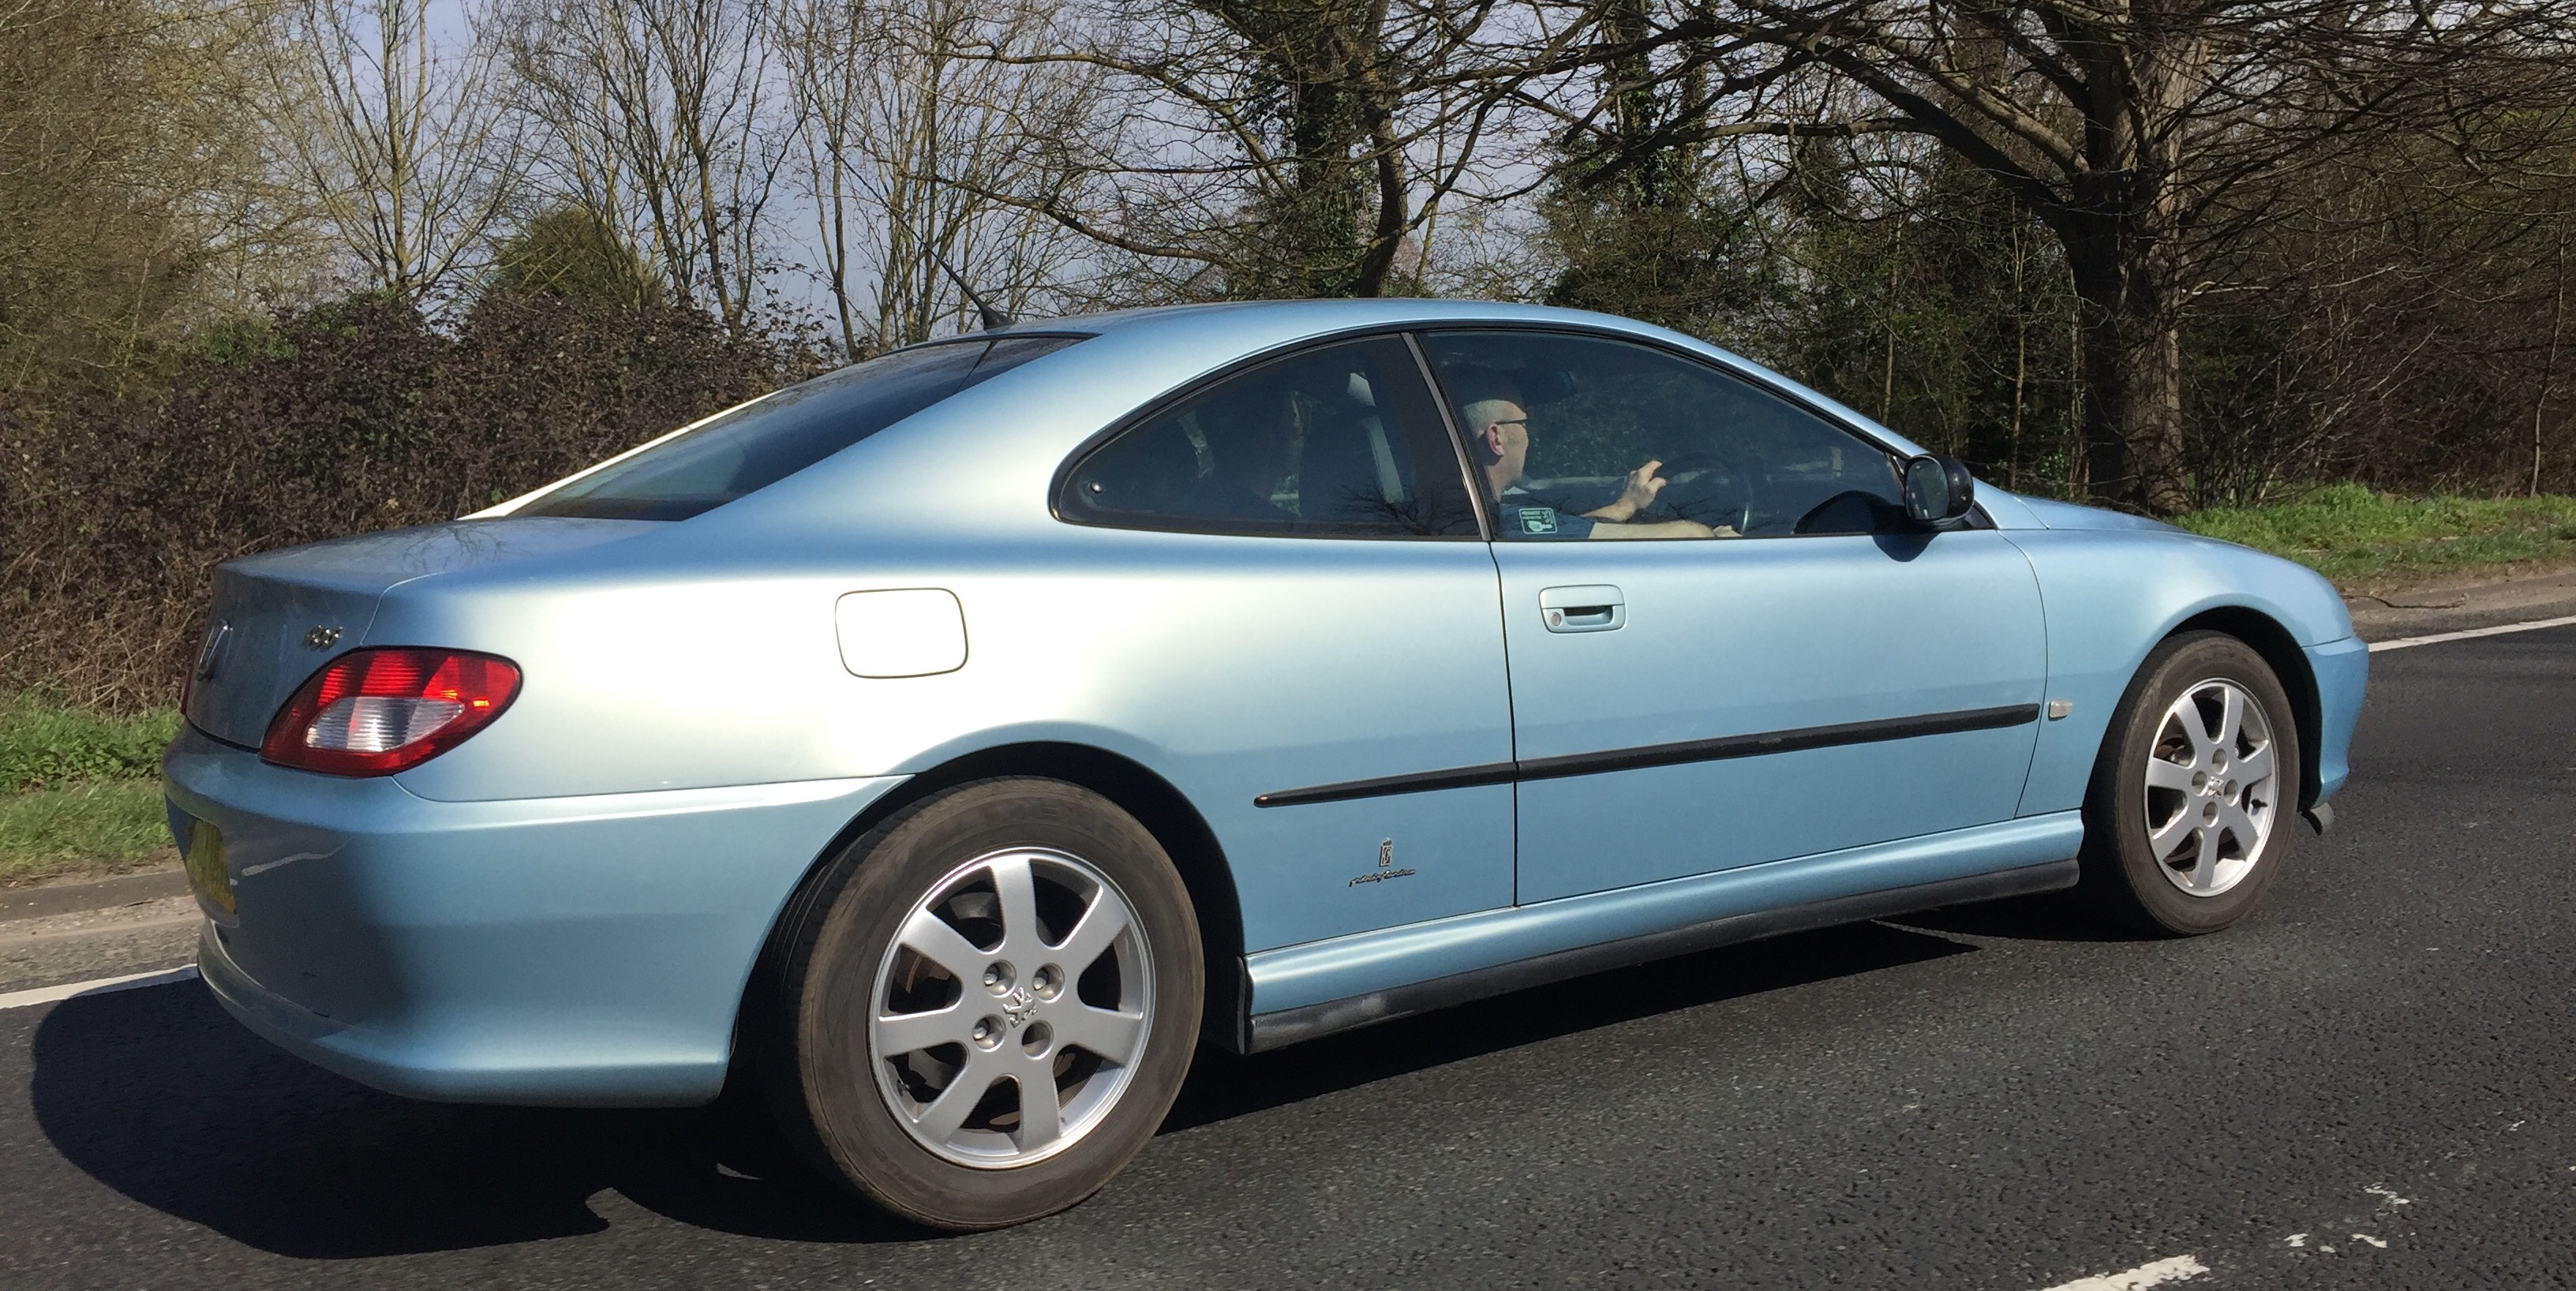 Image of a light blue Peugeot 406 coupe travelling on a road